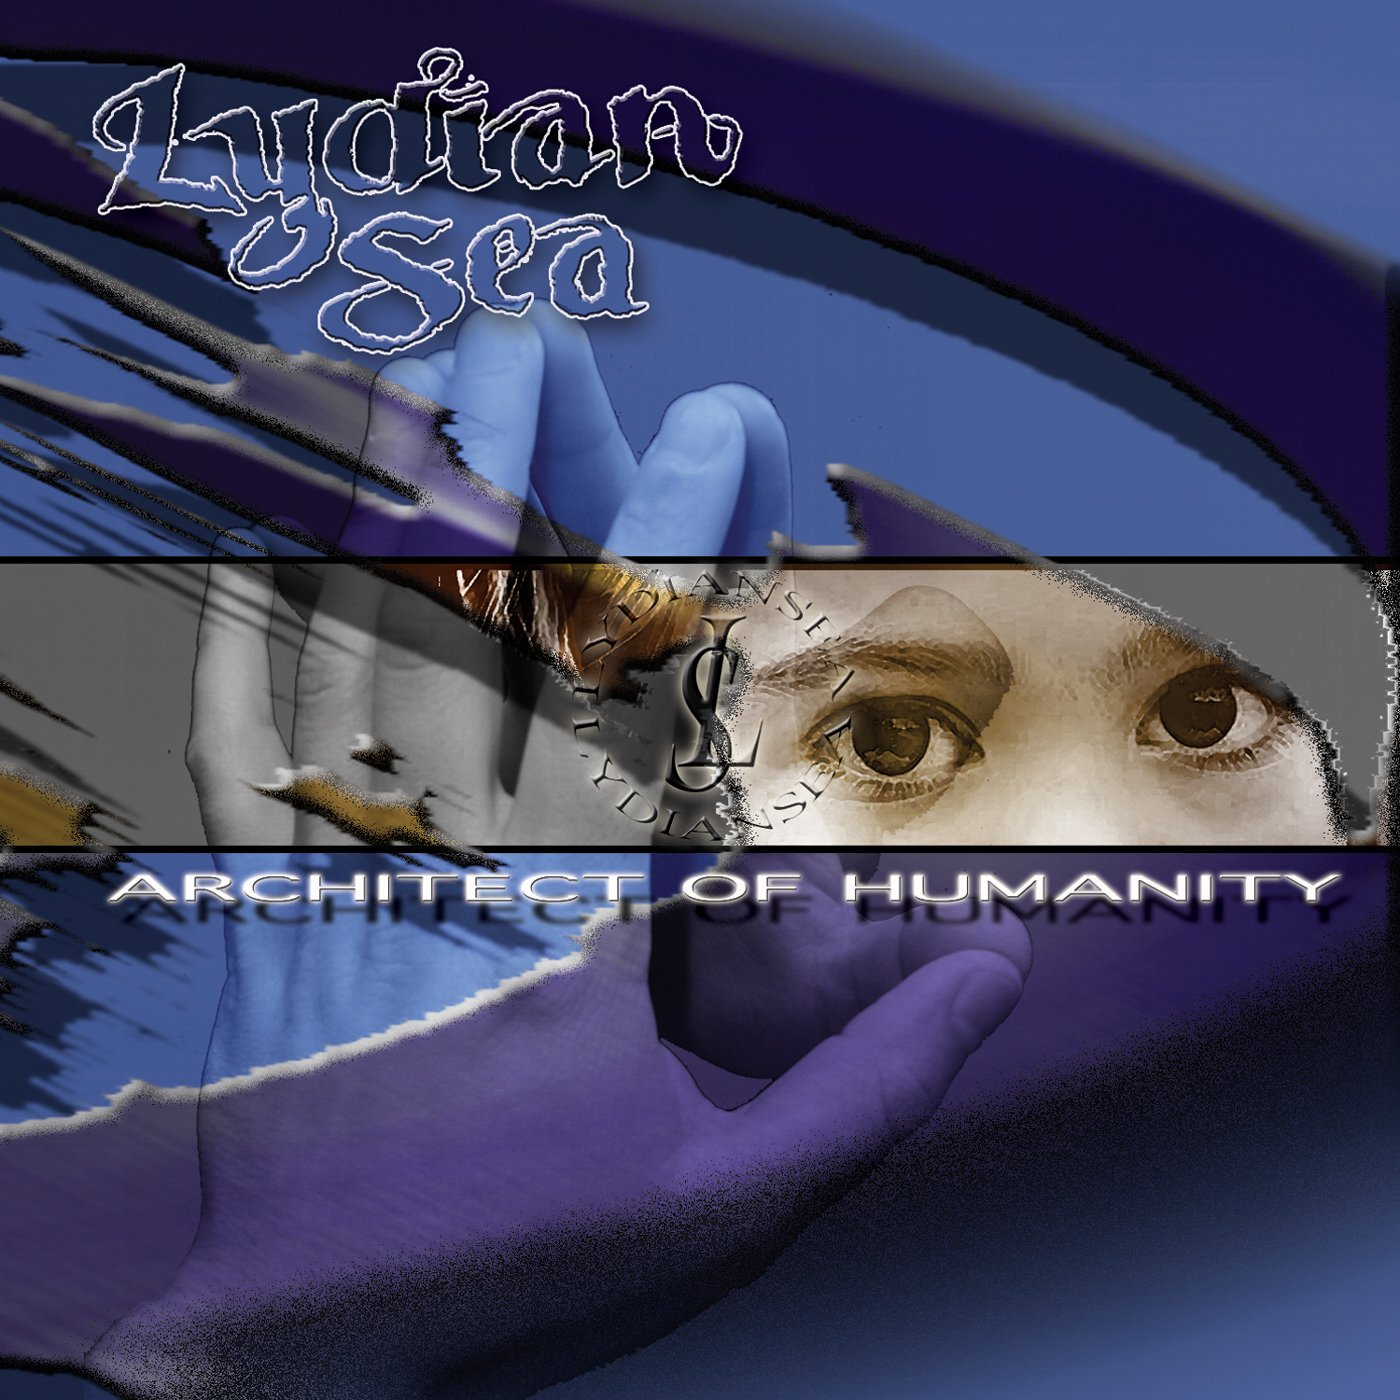 Architect of Humanity by Lydian Sea USB Wristband